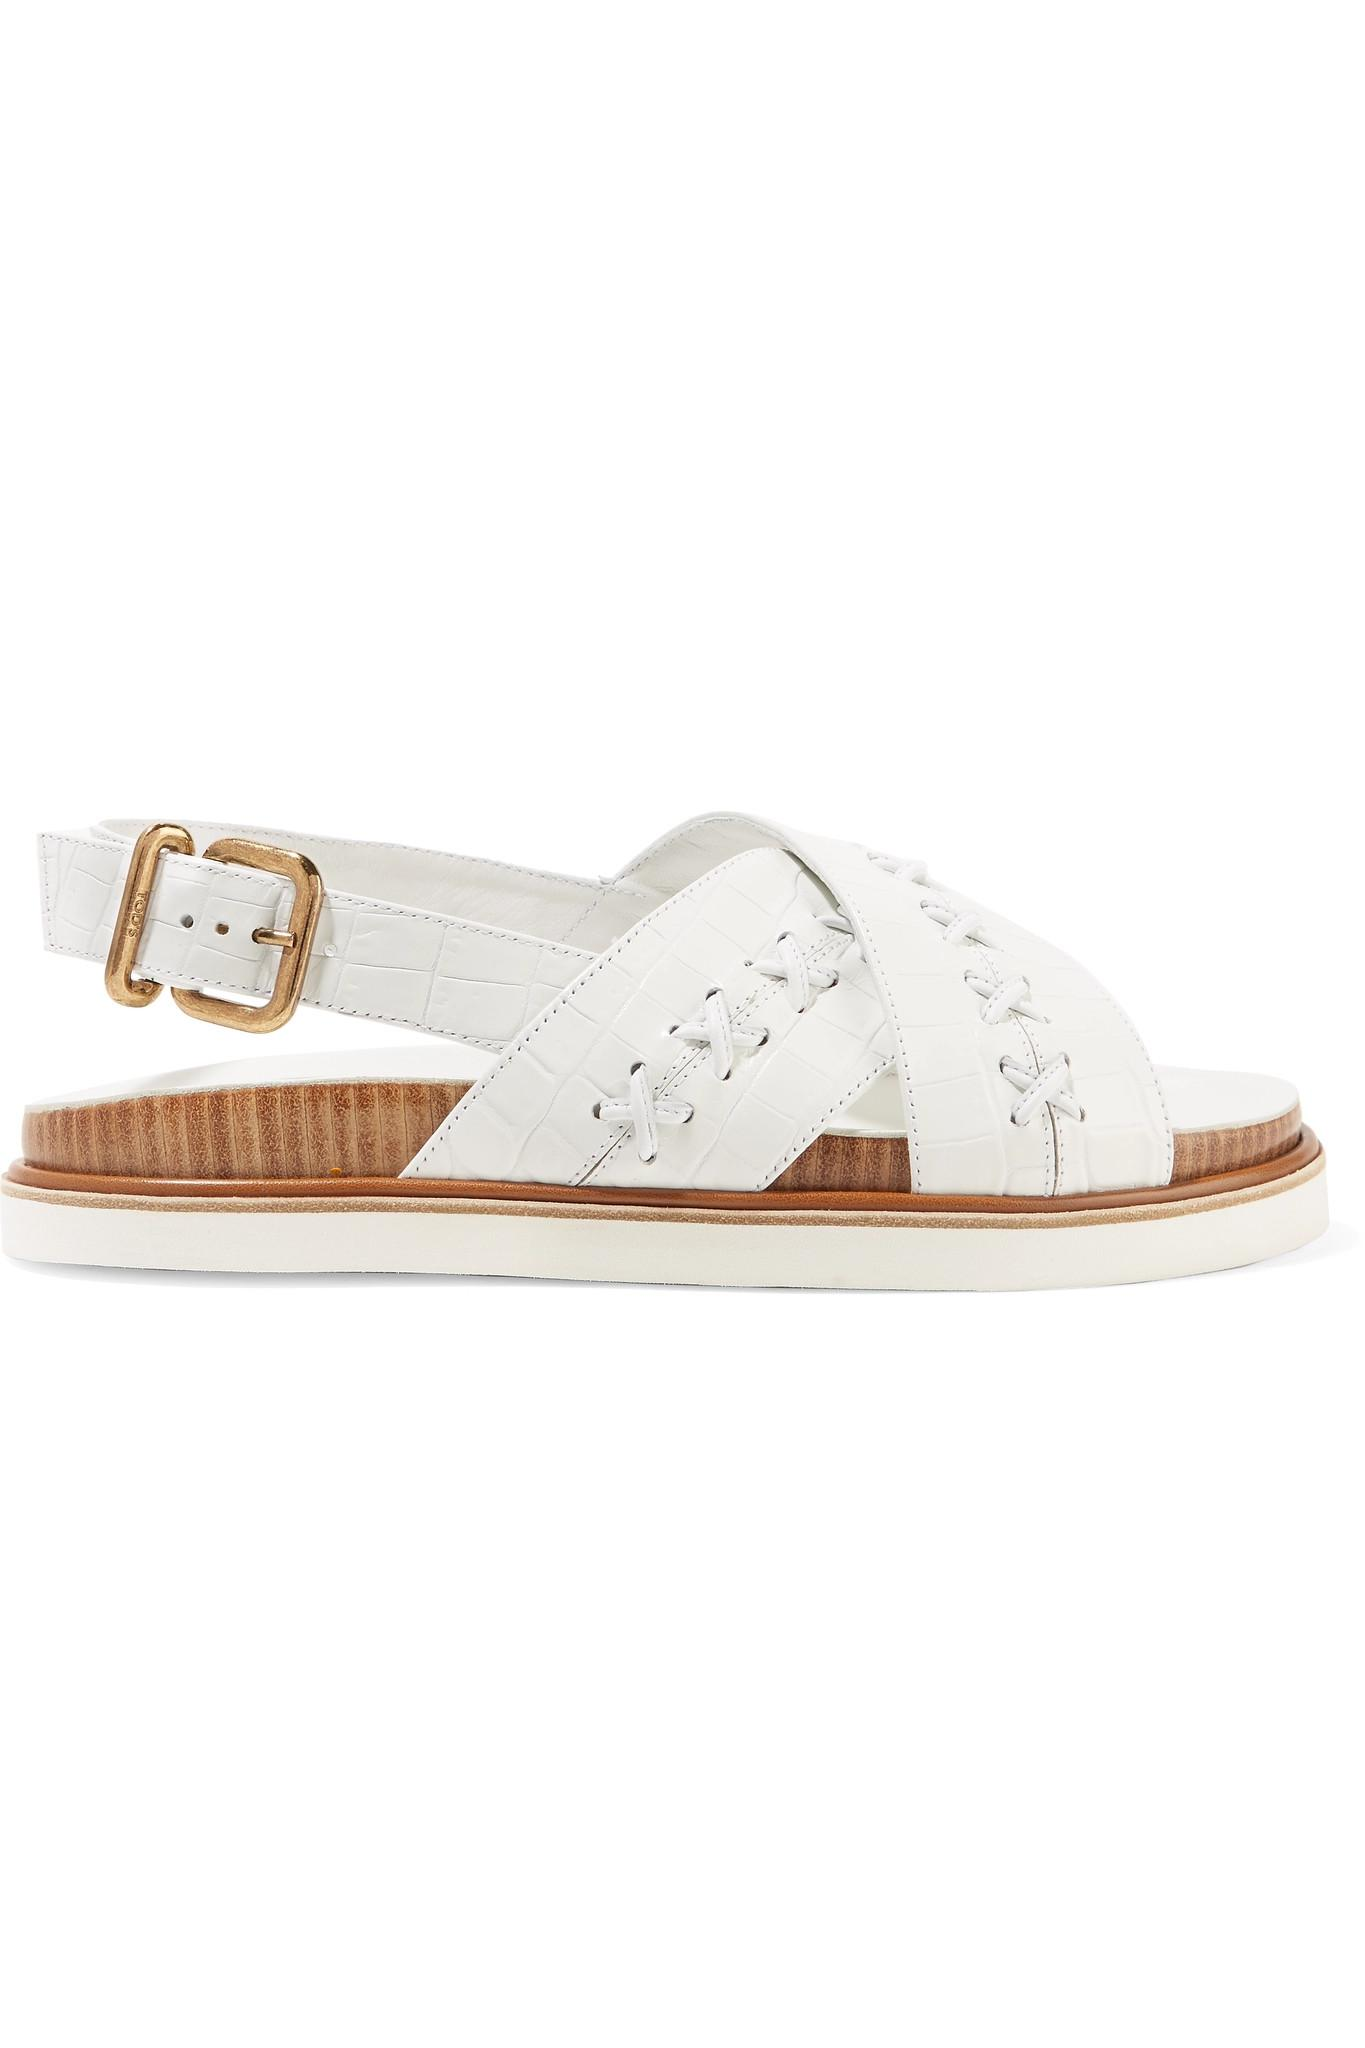 Whipstitched Croc-effect Leather Slingback Sandals - White Tod's CfjbHzV